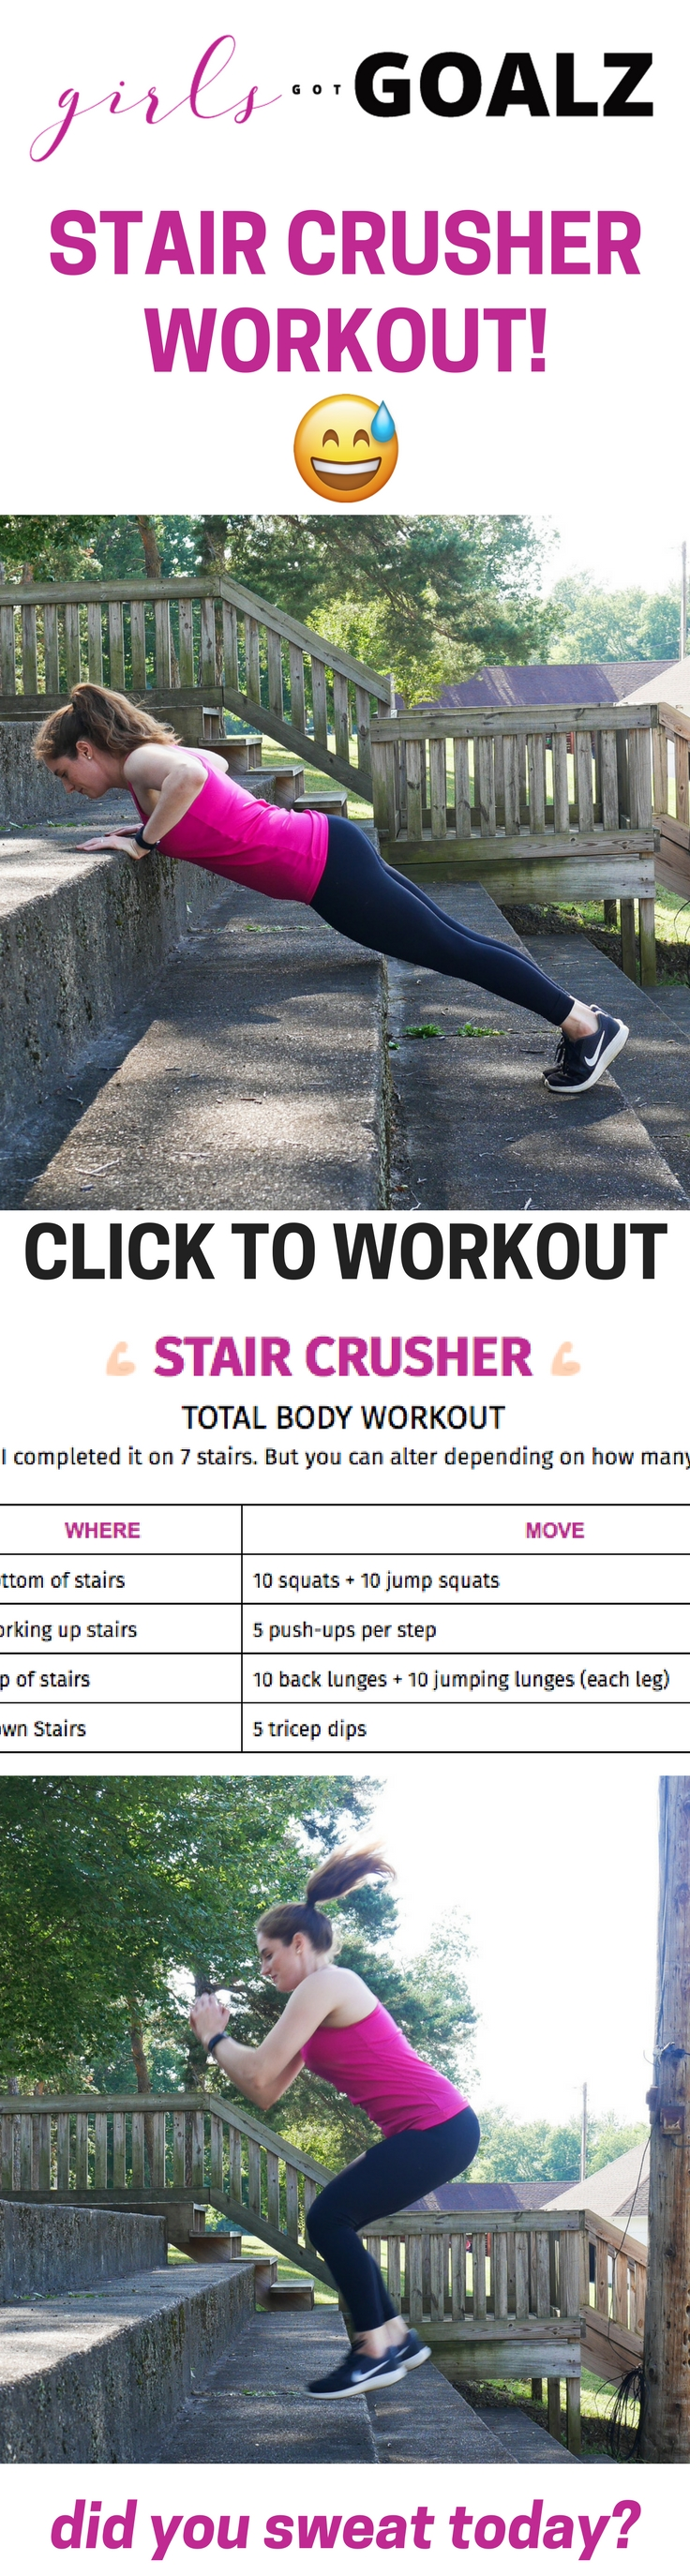 Stair Crusher Workout from Girls Got Goalz!